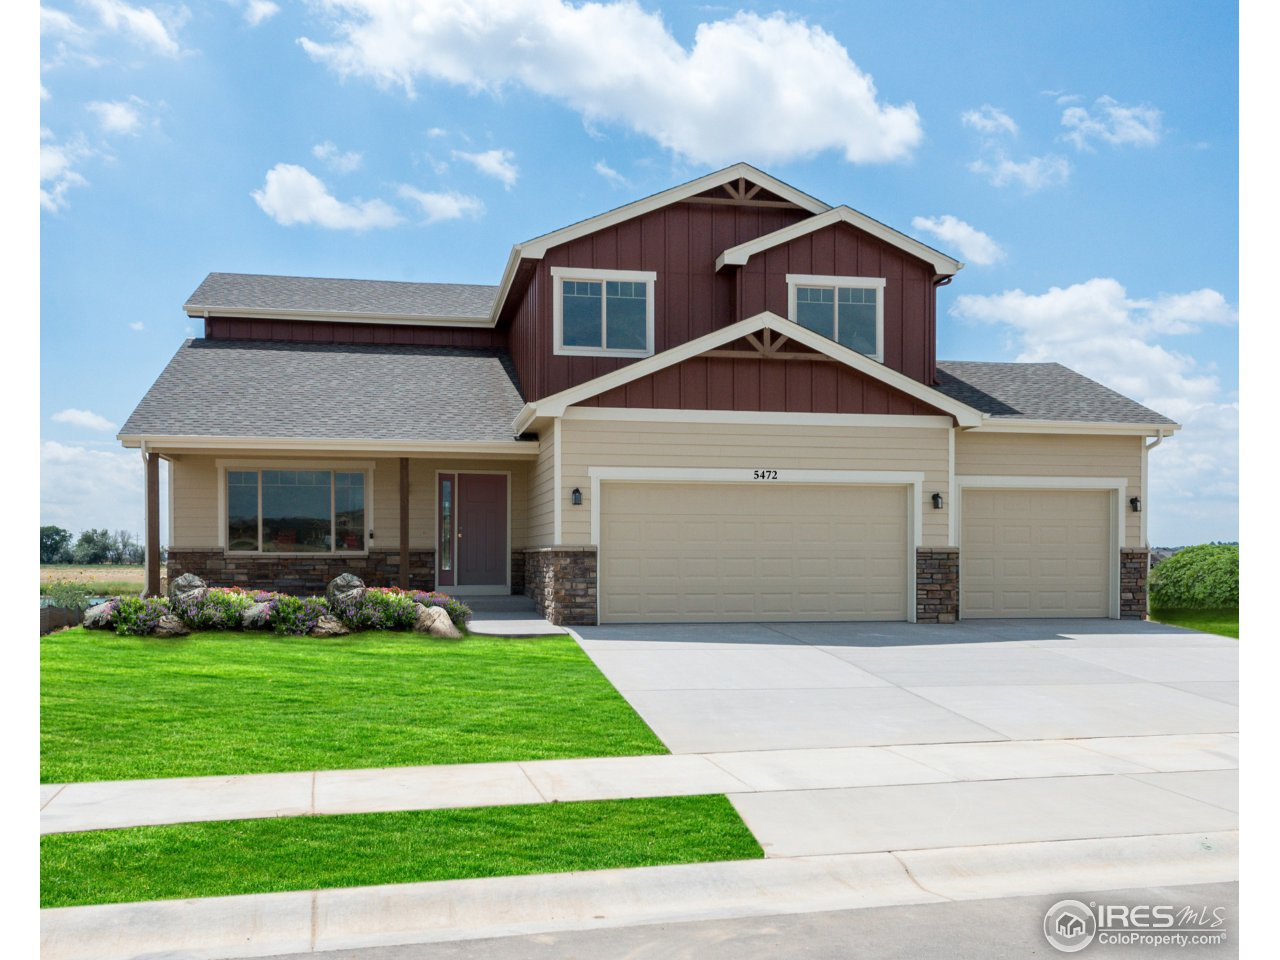 5472 Long Dr, Timnath, CO 80547